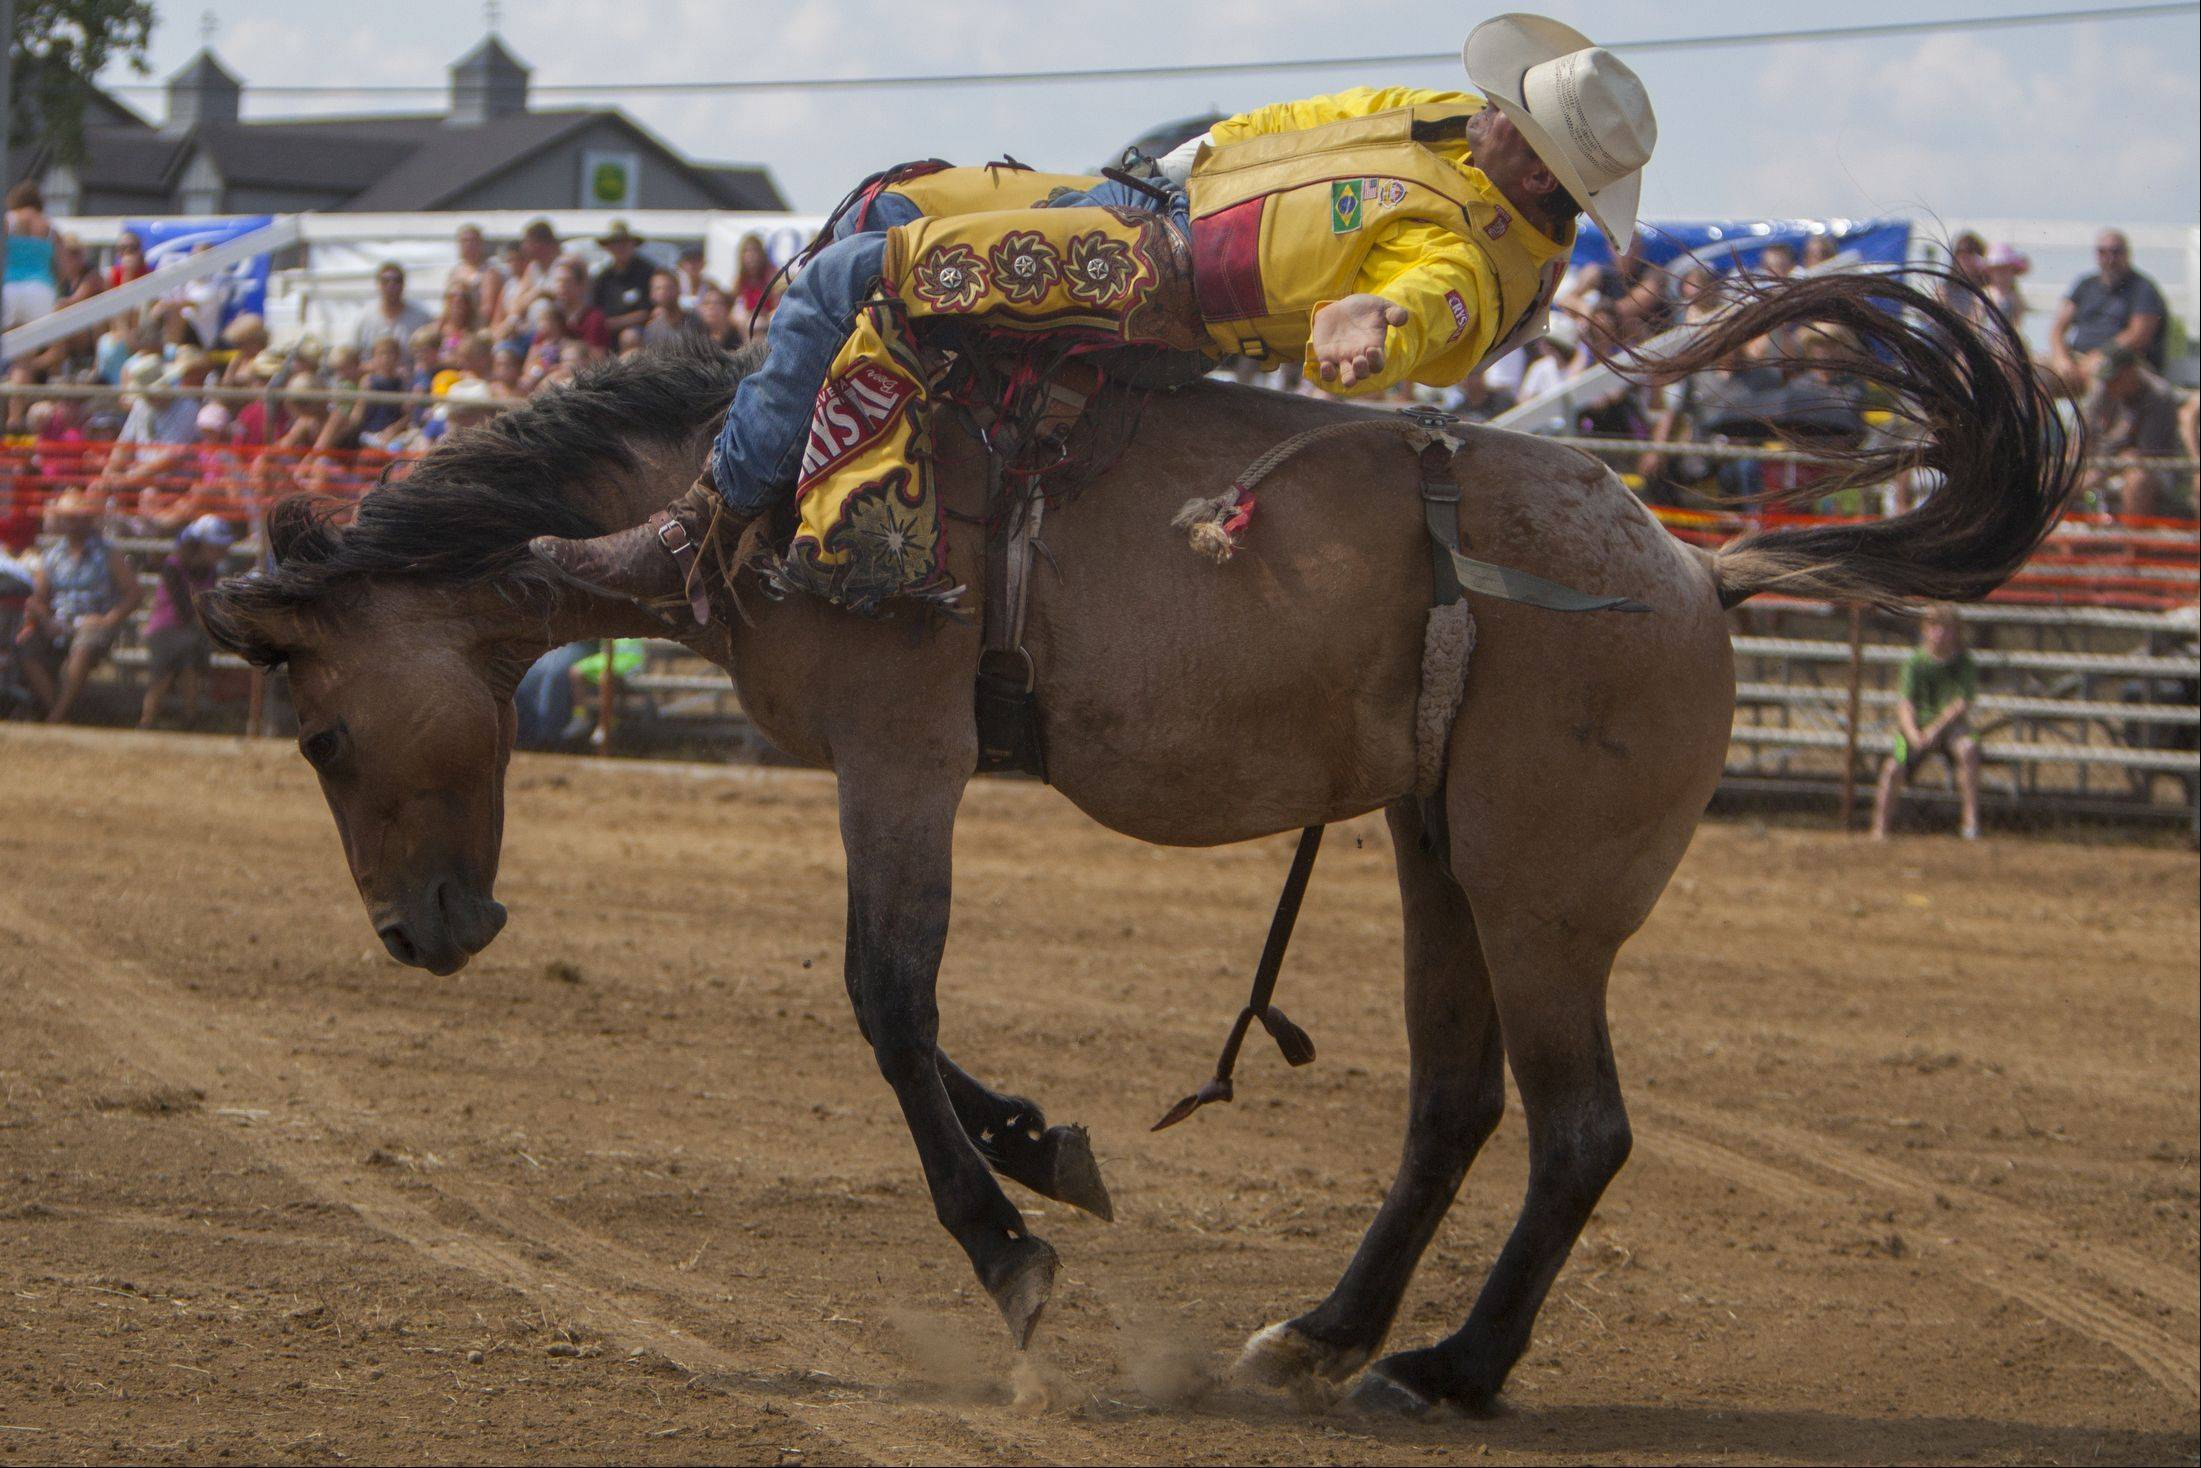 Luiz Morera, a three-time champion for bareback riding in Brazil, holds on as he is bucked in the air during last year's IPRA Championship Rodeo at Golden Oaks Rodeo Grounds in Wauconda.